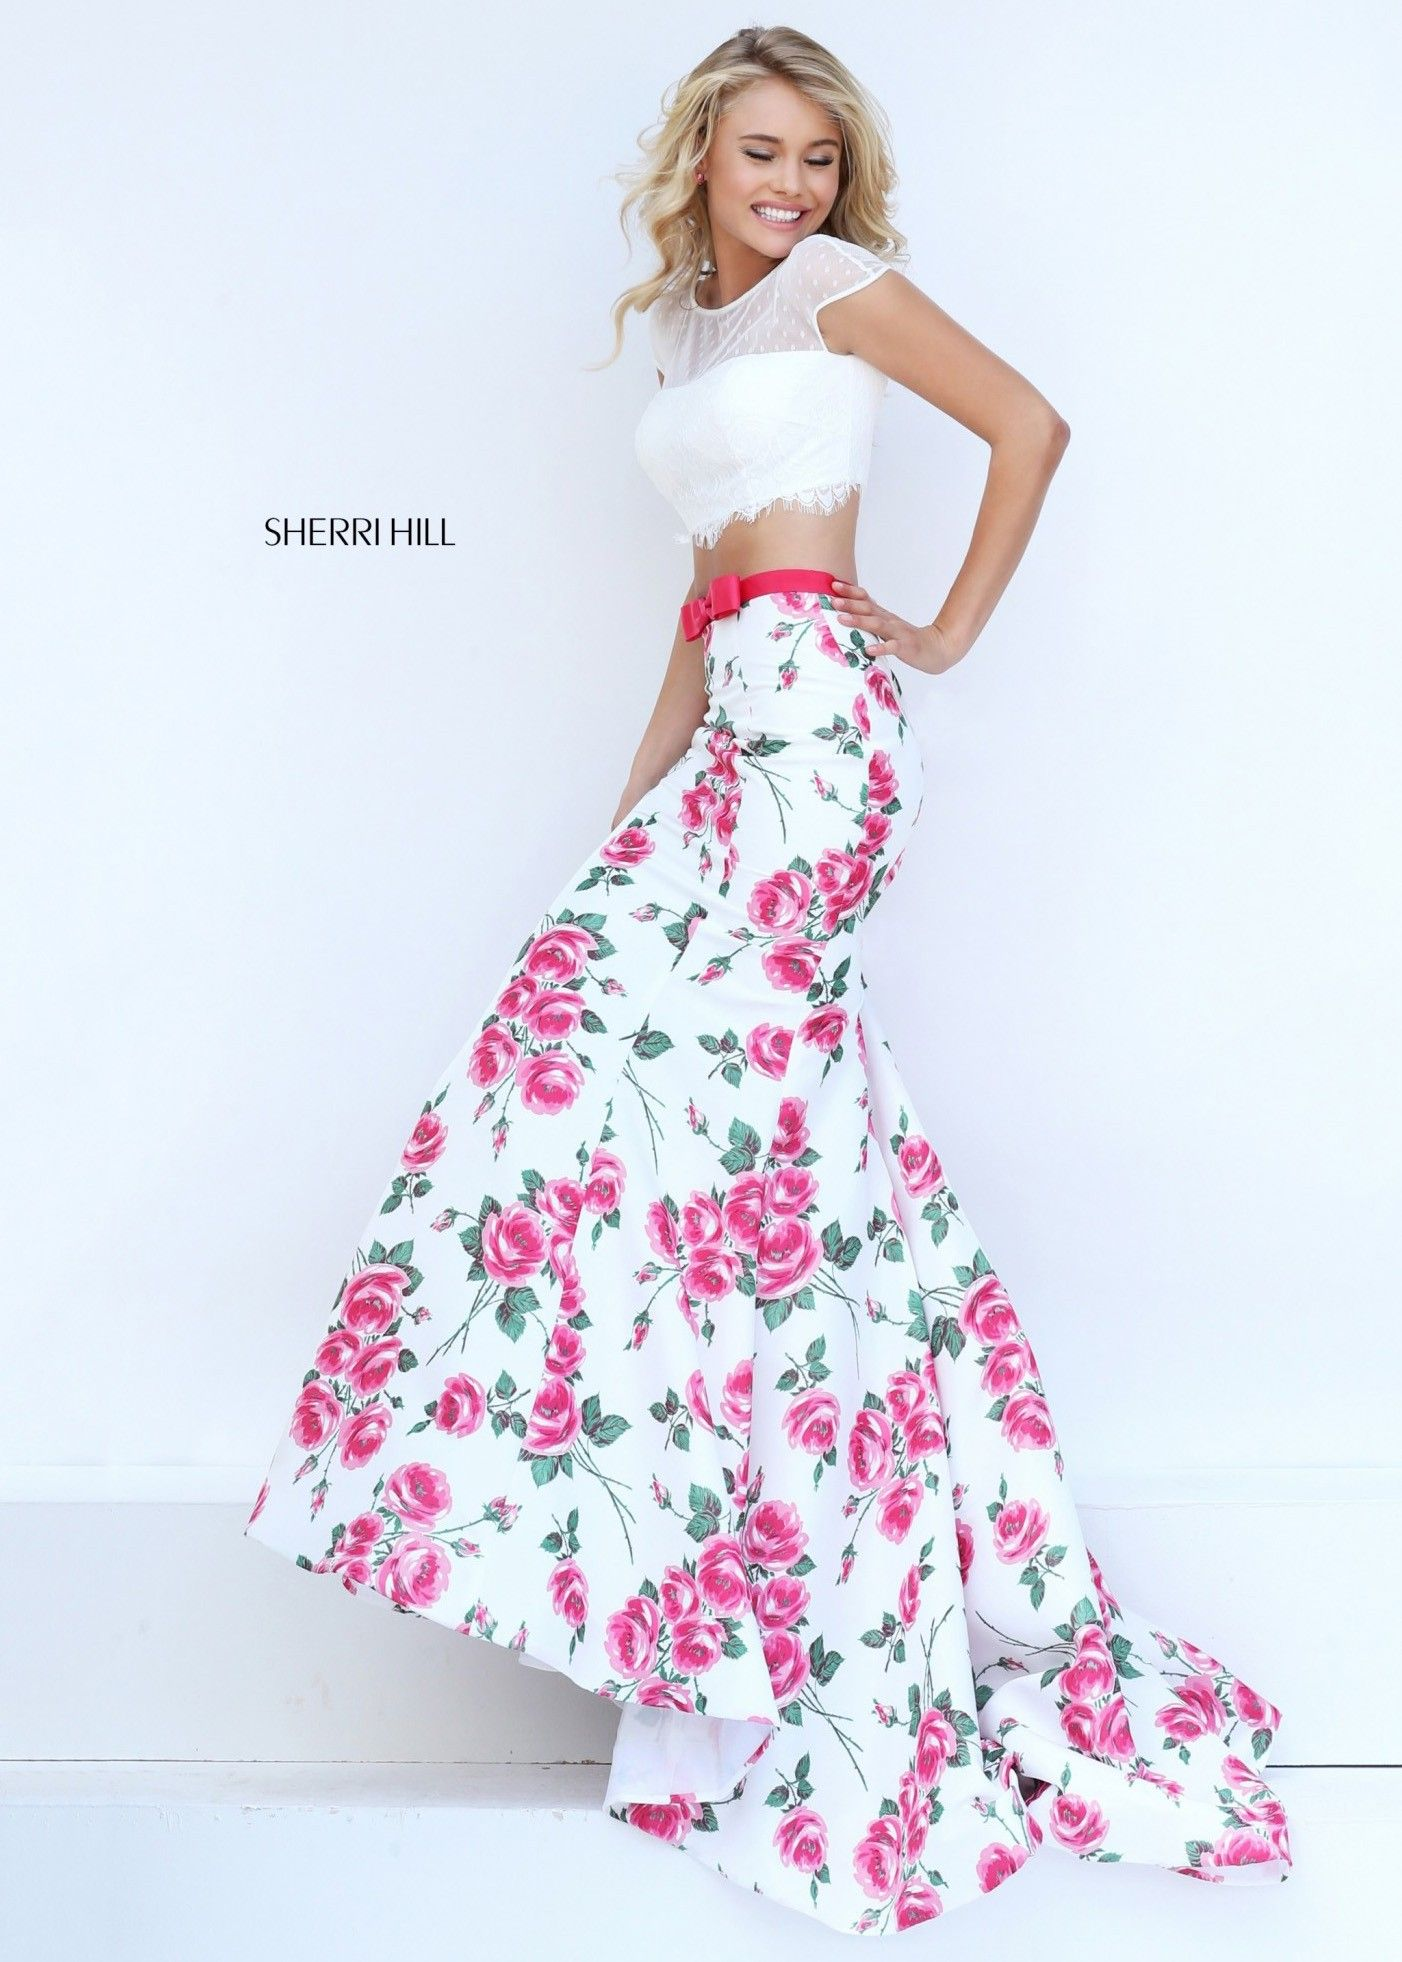 d6d2aa400fb0 Sherri Hill 50421 Colorful Floral Print 2 Piece Mermaid Style Prom Dress  with Scalloped Lace Cropped Top